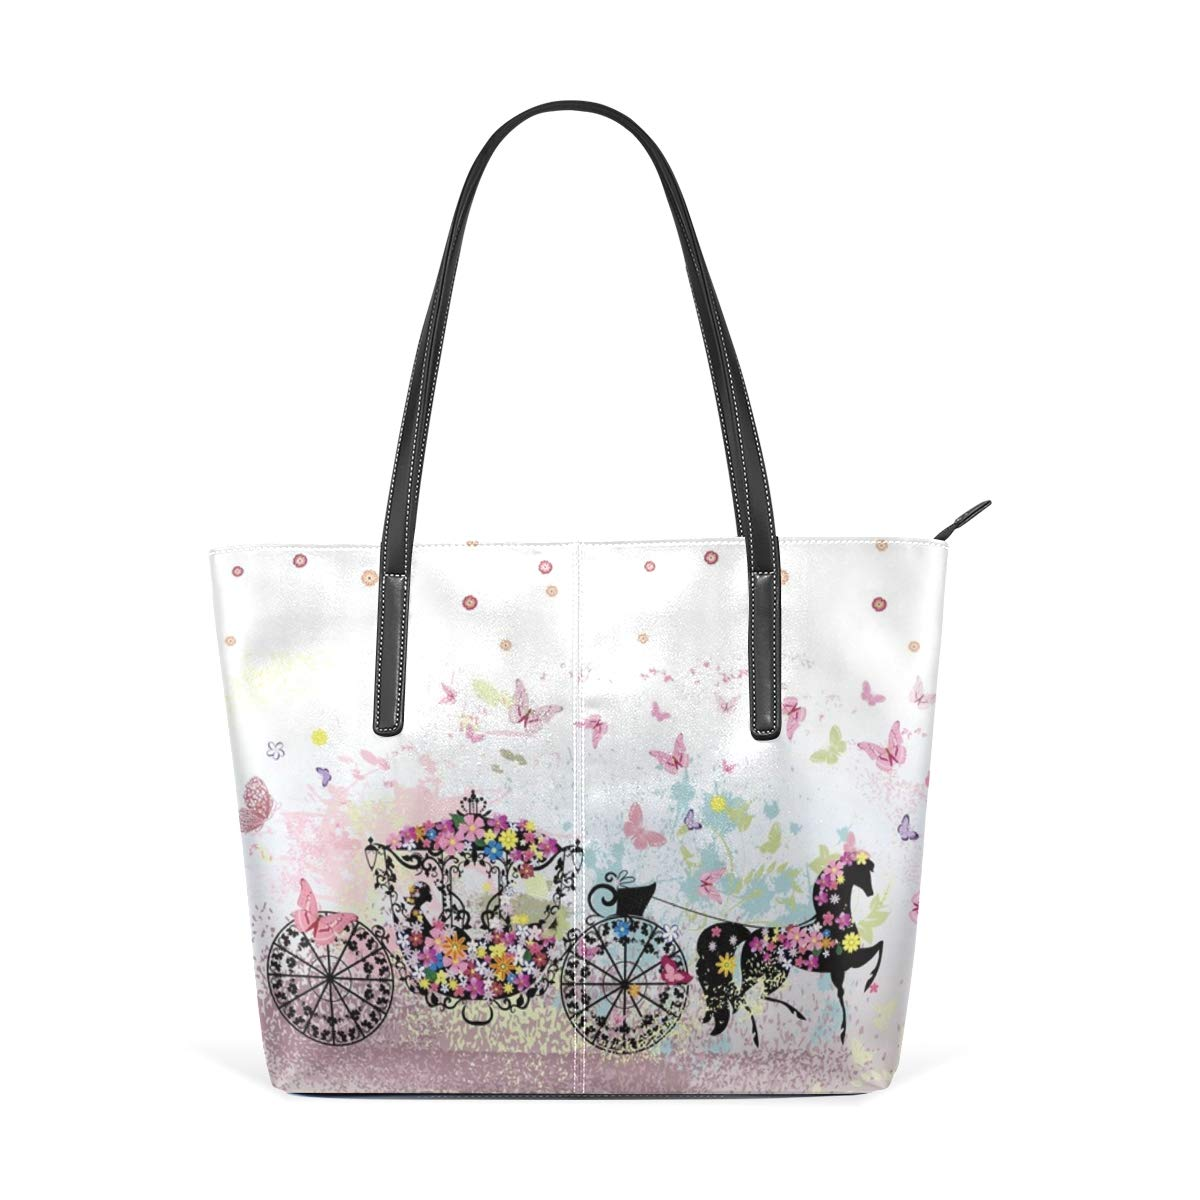 Castle In The Fairy Tale World Womens PU Leather Tote Shoulder Bags Handbags Casual Bag